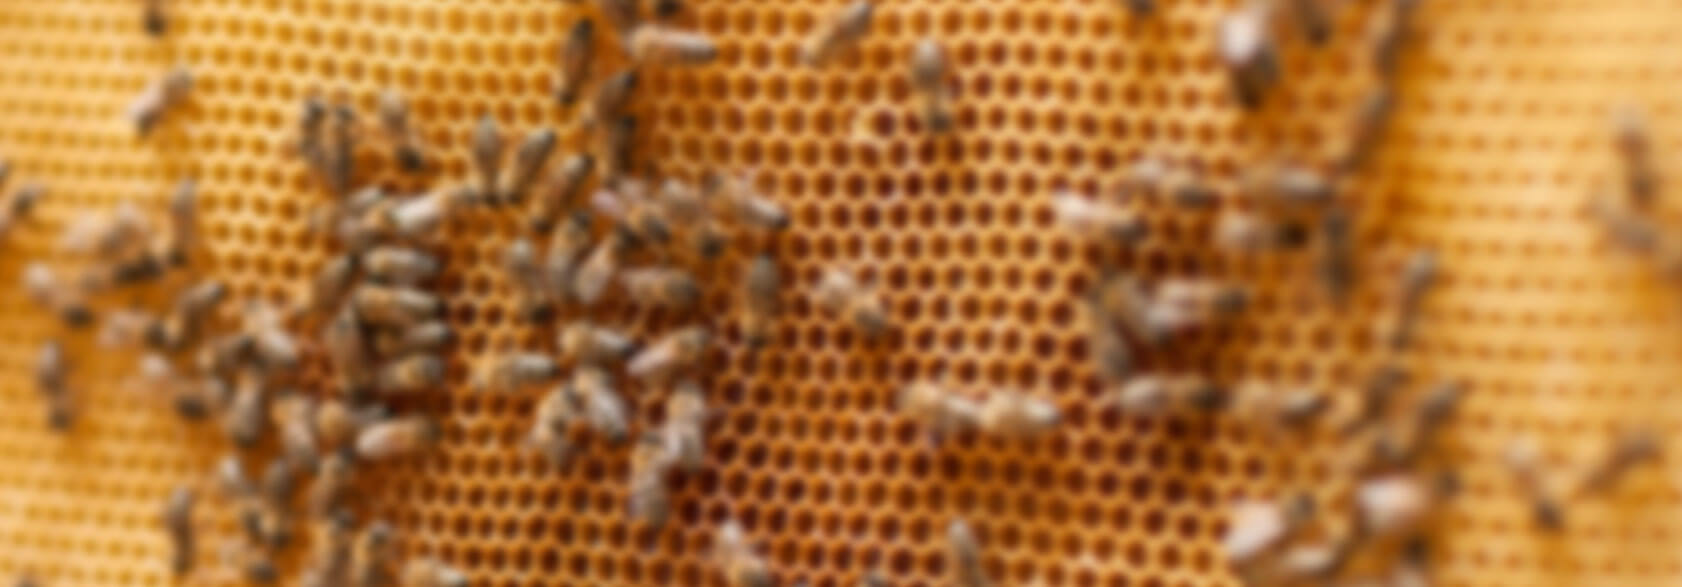 honeyhome-banner